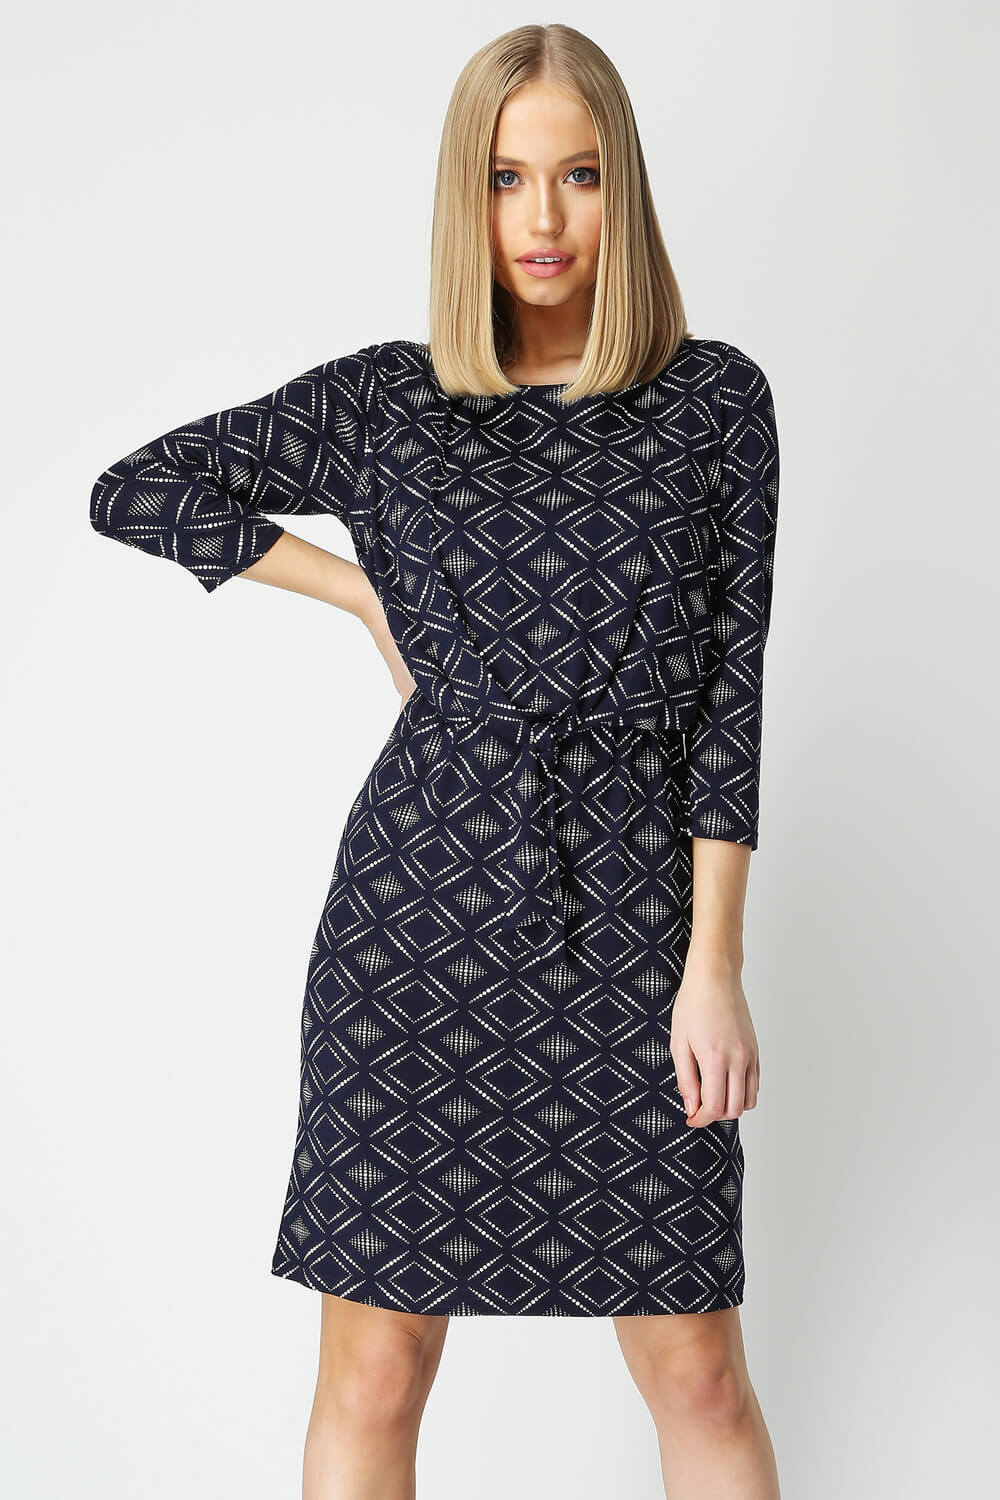 Roman Originals Geo Print Knot Front Dress